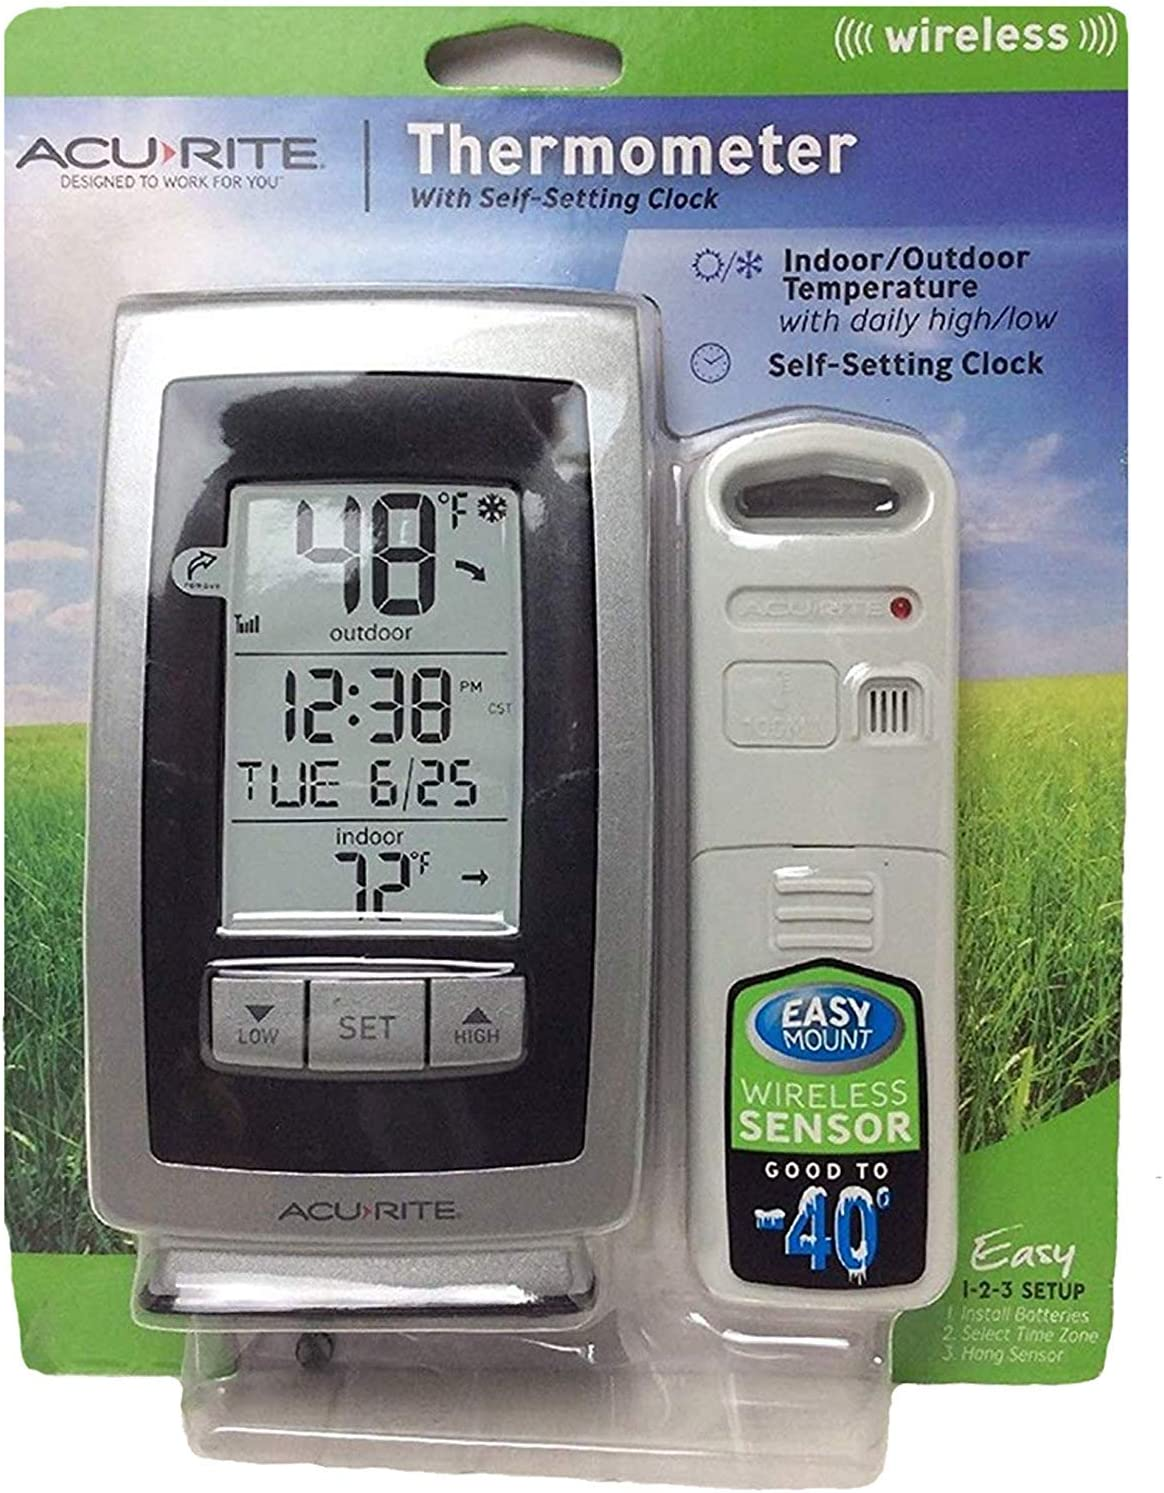 2 PACK NEW ACU-RITE WIRELESS INDOOR OUTDOOR THERMOMETER WITH SELF SETTING CLOCK